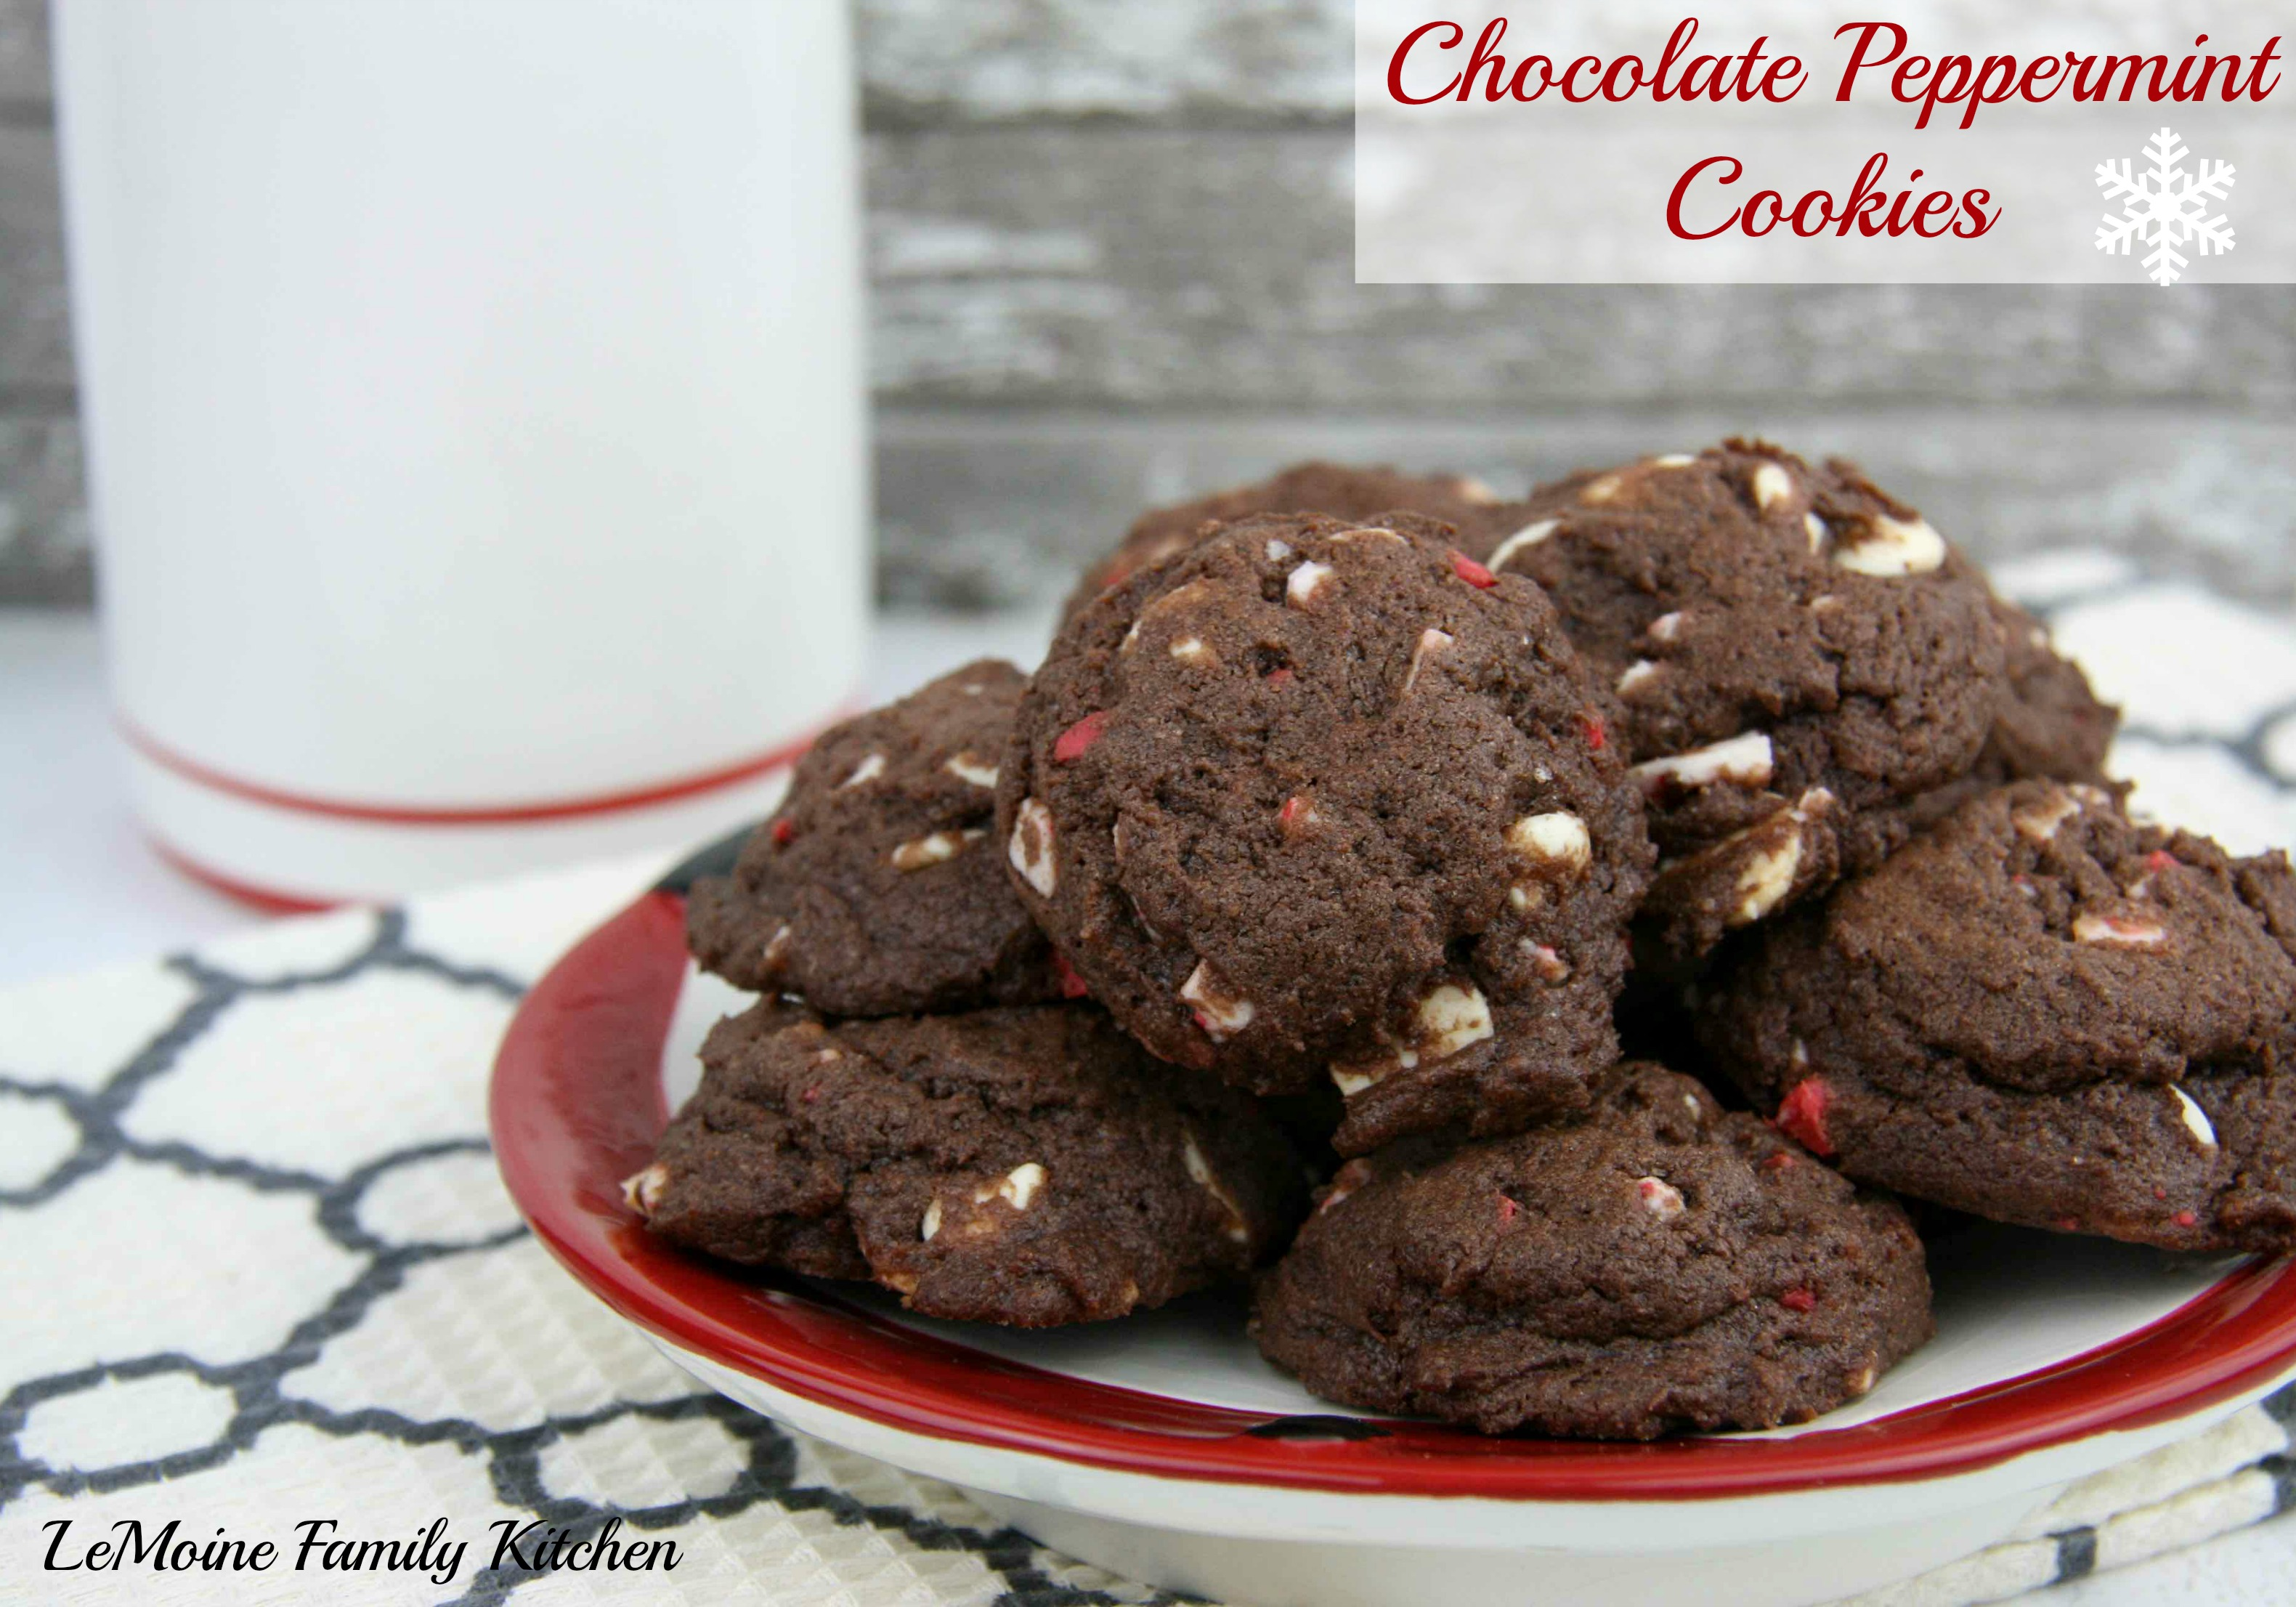 Chocolate Peppermint Cookies, a Virtual Cookie Swap Party & $100 PayPal Cash Giveaway!